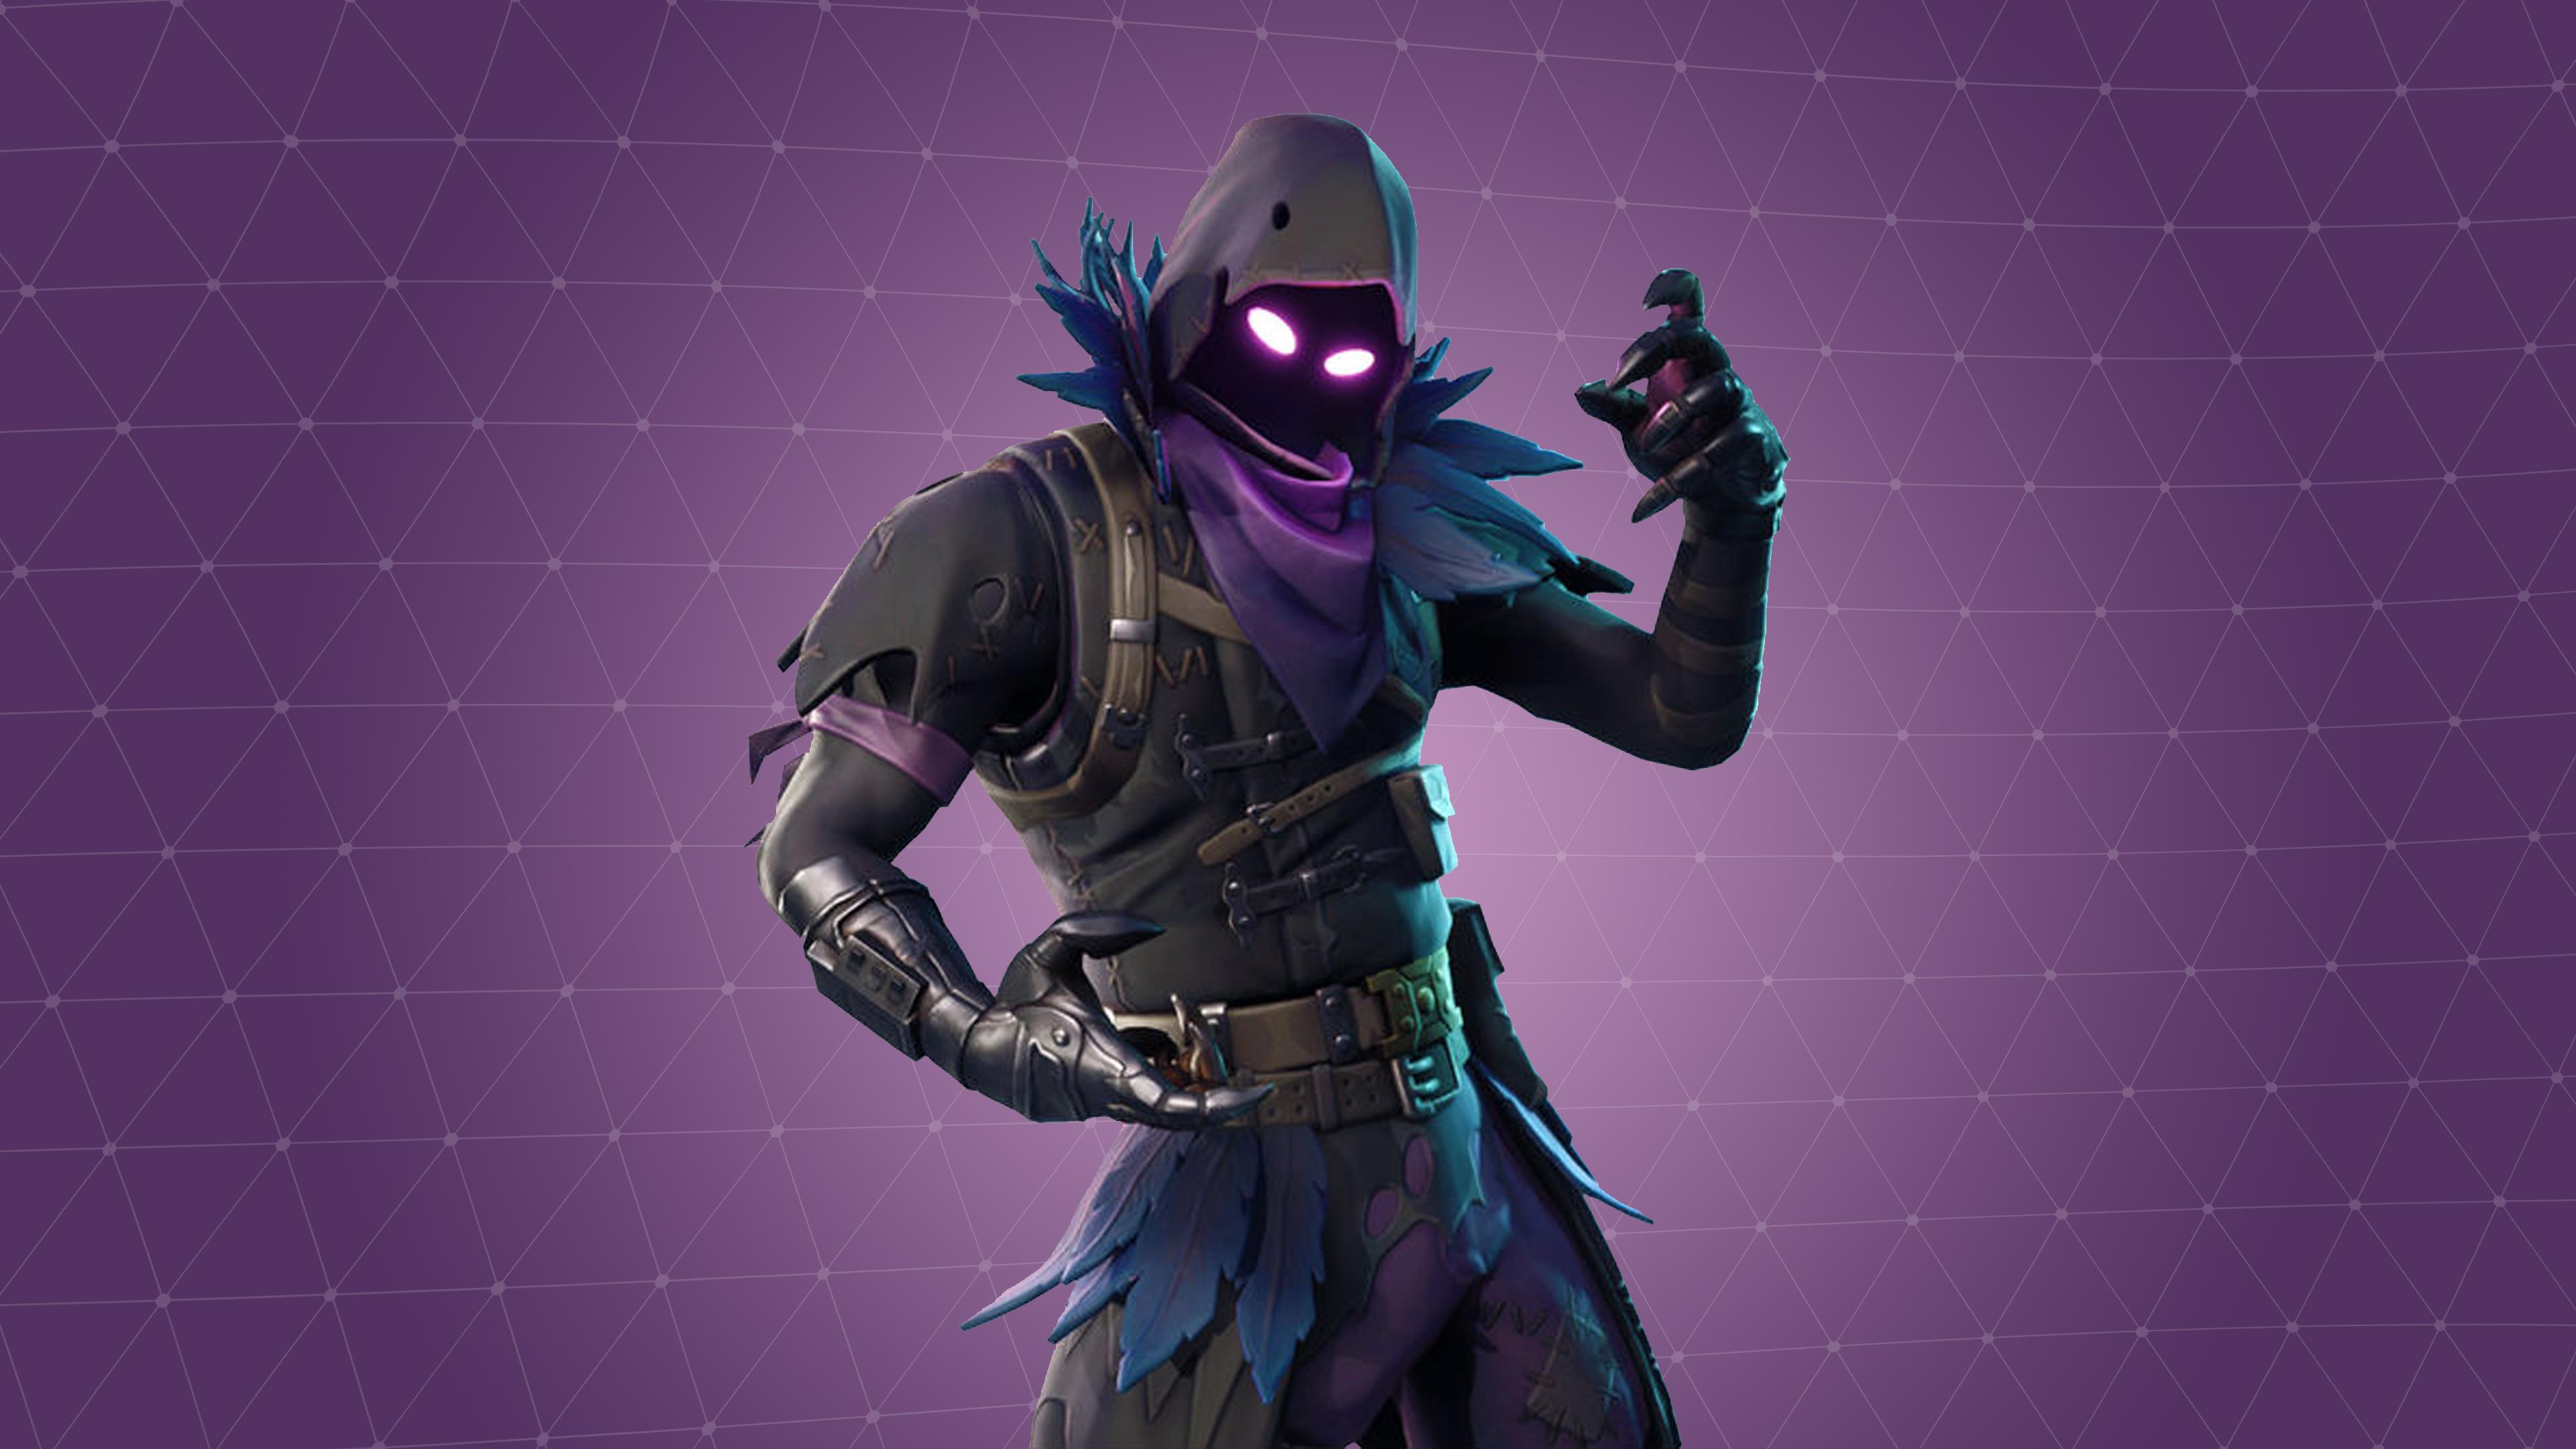 fortnite raven skin wallpaper background 63808